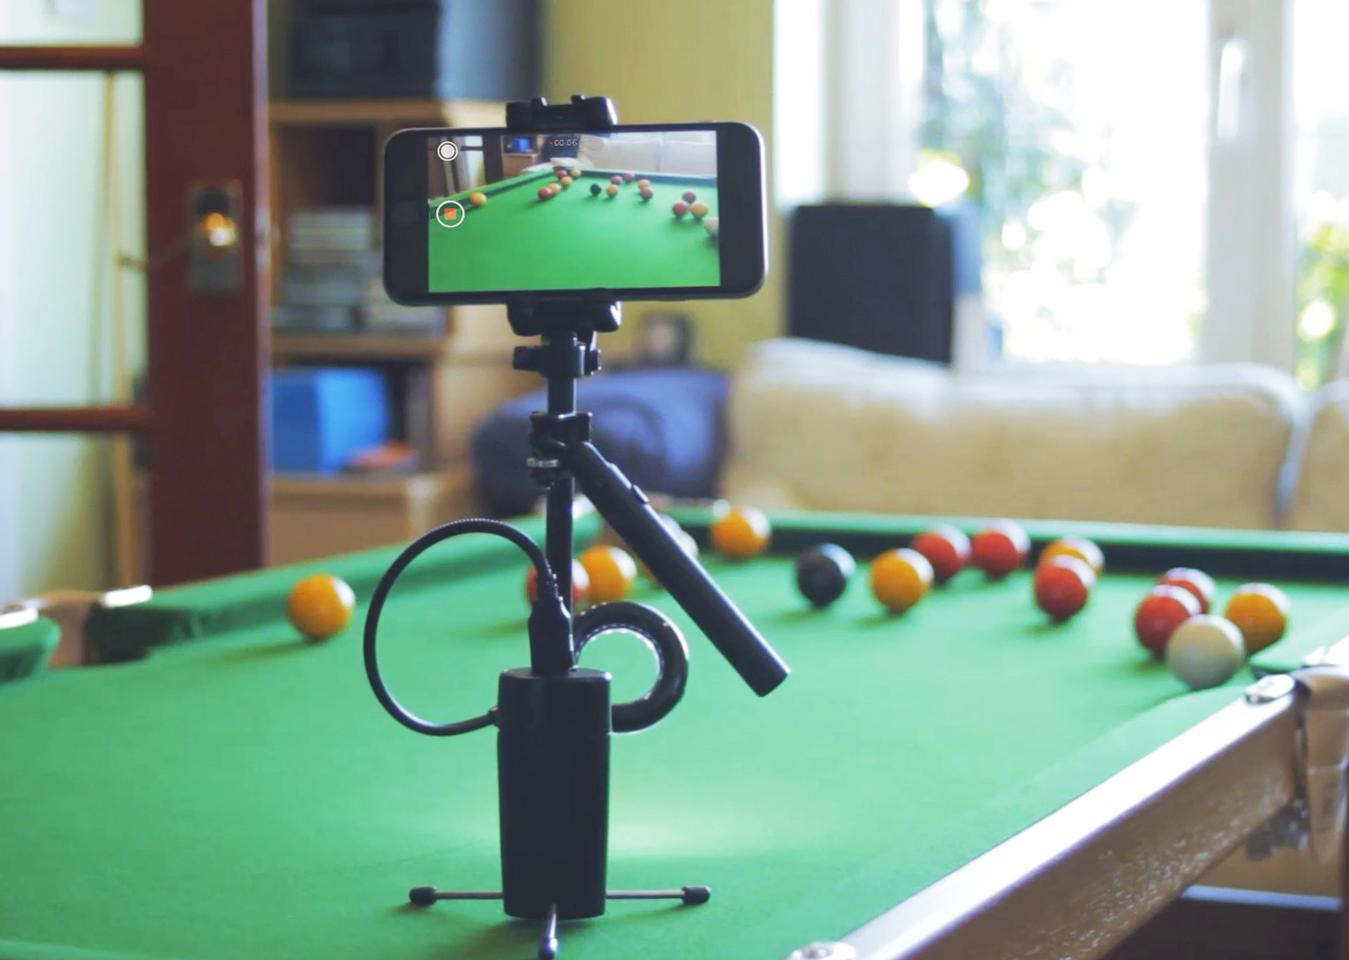 The base of theMiniRigstabilizer features tripod legs